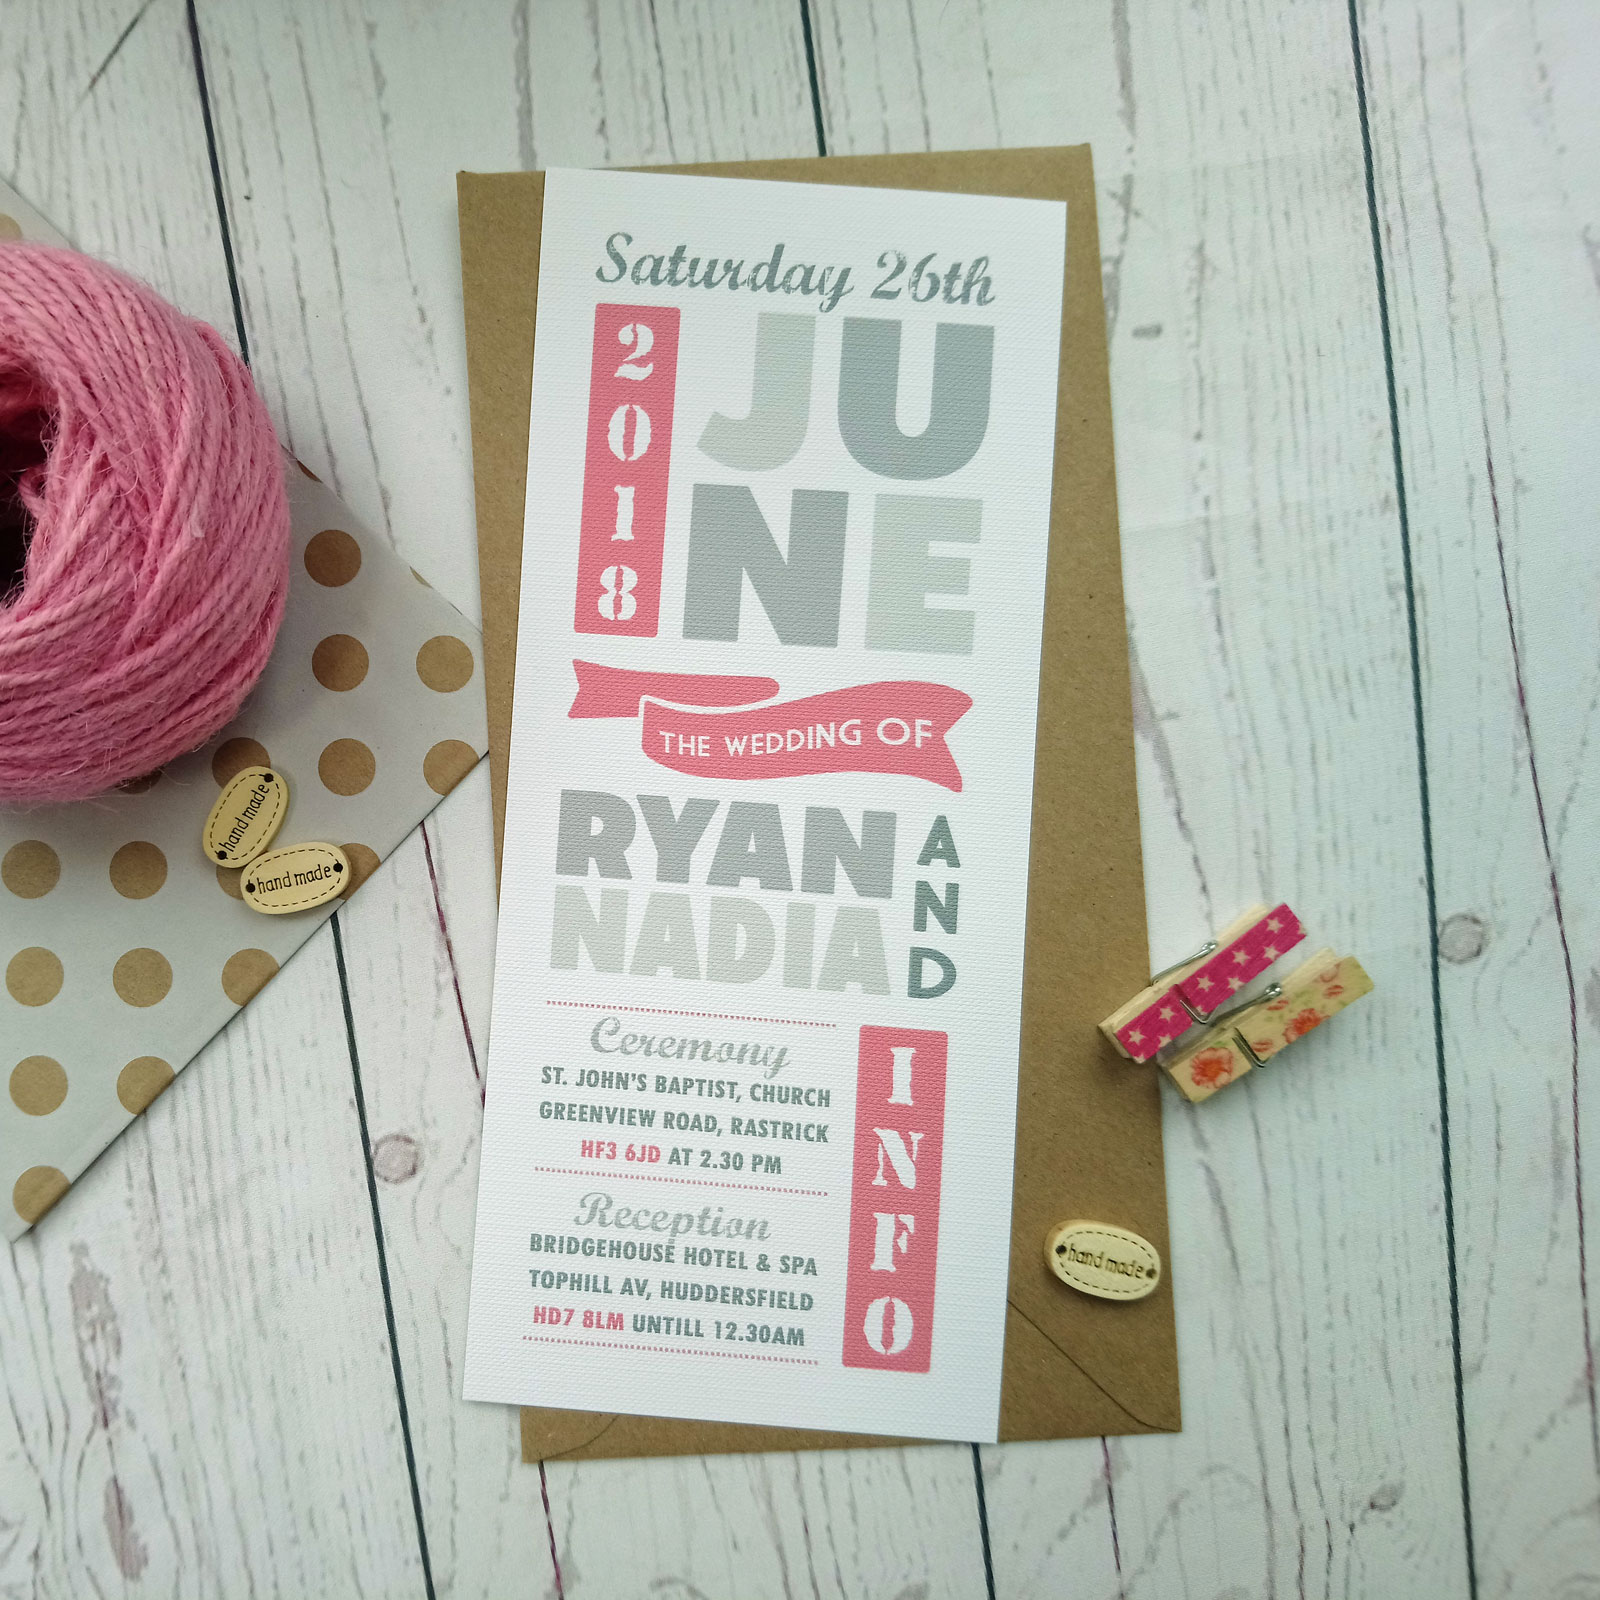 Minimalist Pink Banners Wedding Invitation - Sugar Crush Weddings